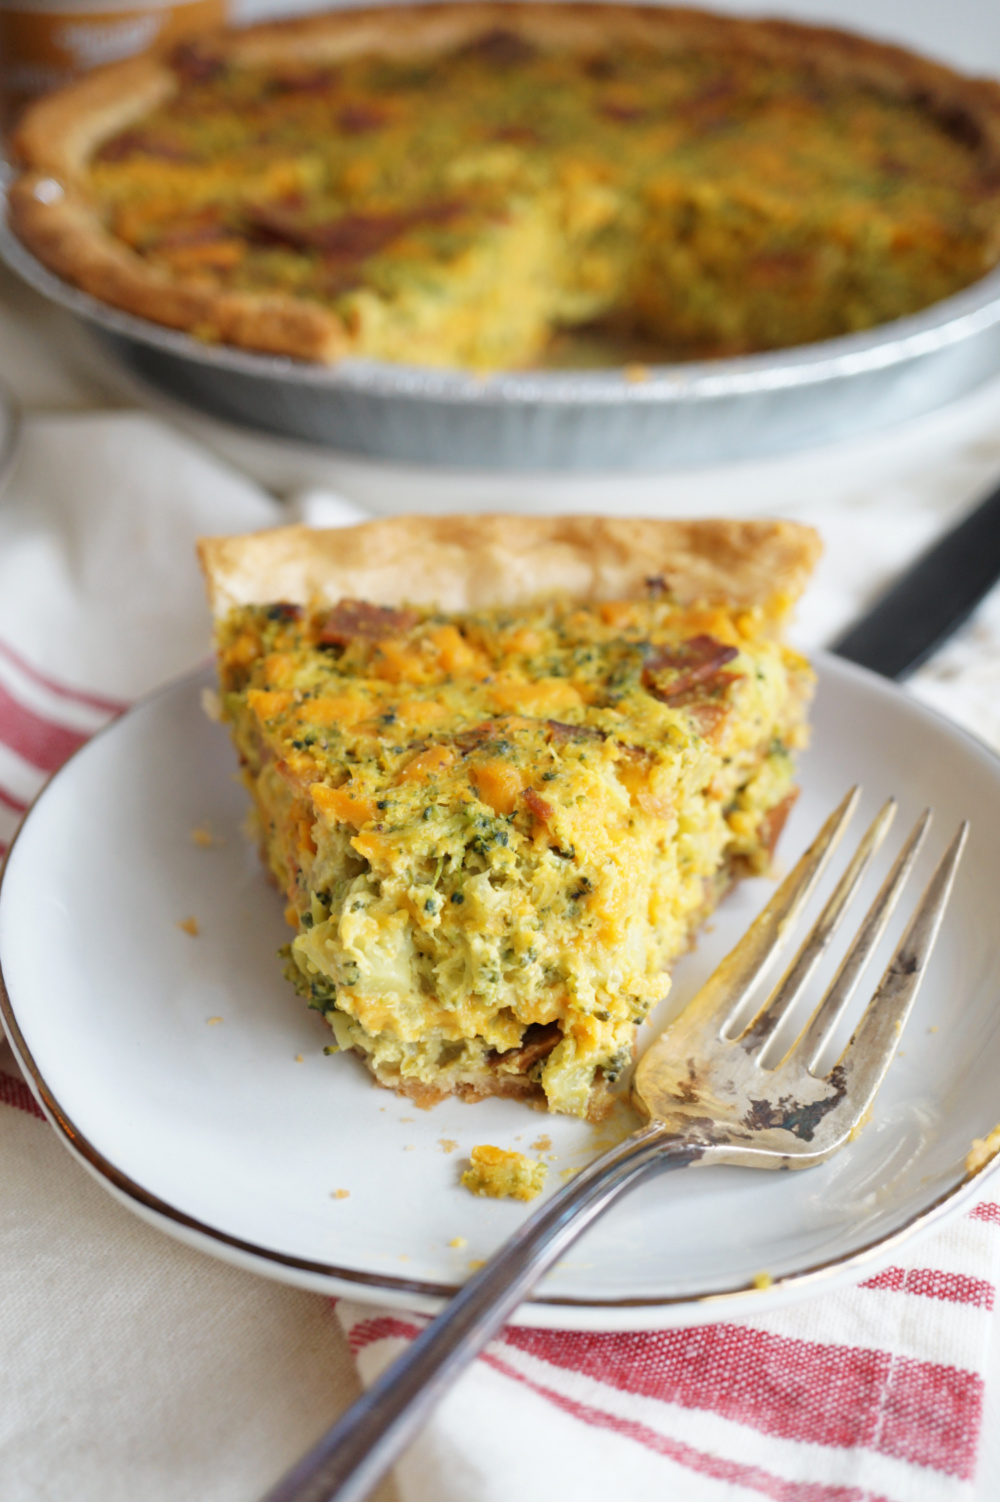 slice of quiche with bite missing